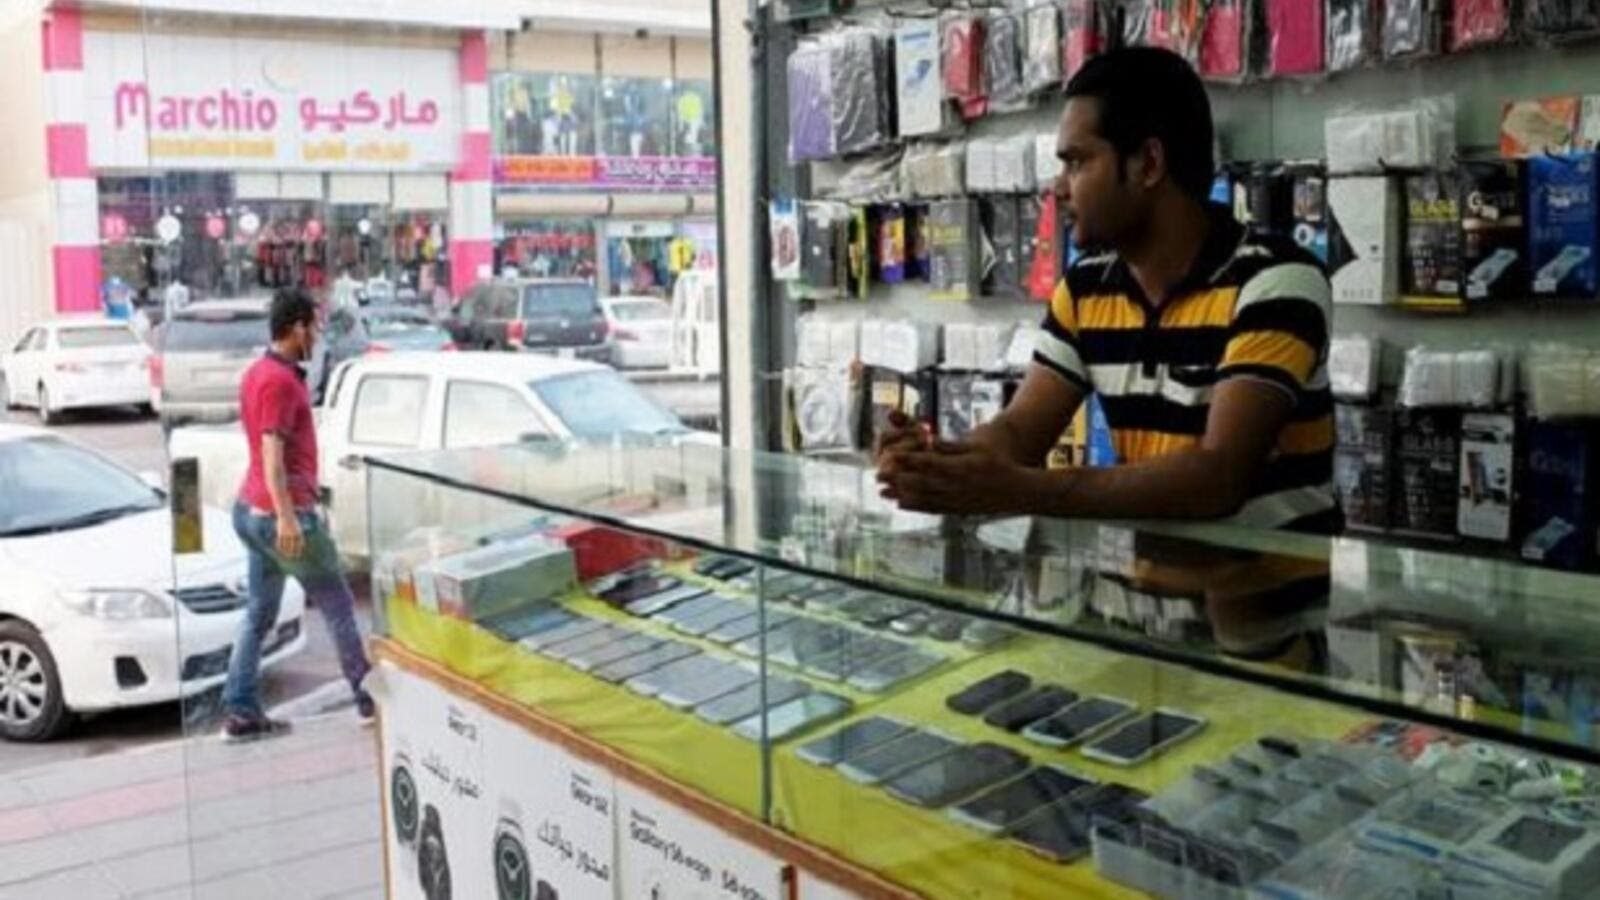 Over 1000 mobile phone shops close, falling foul of Saudization laws